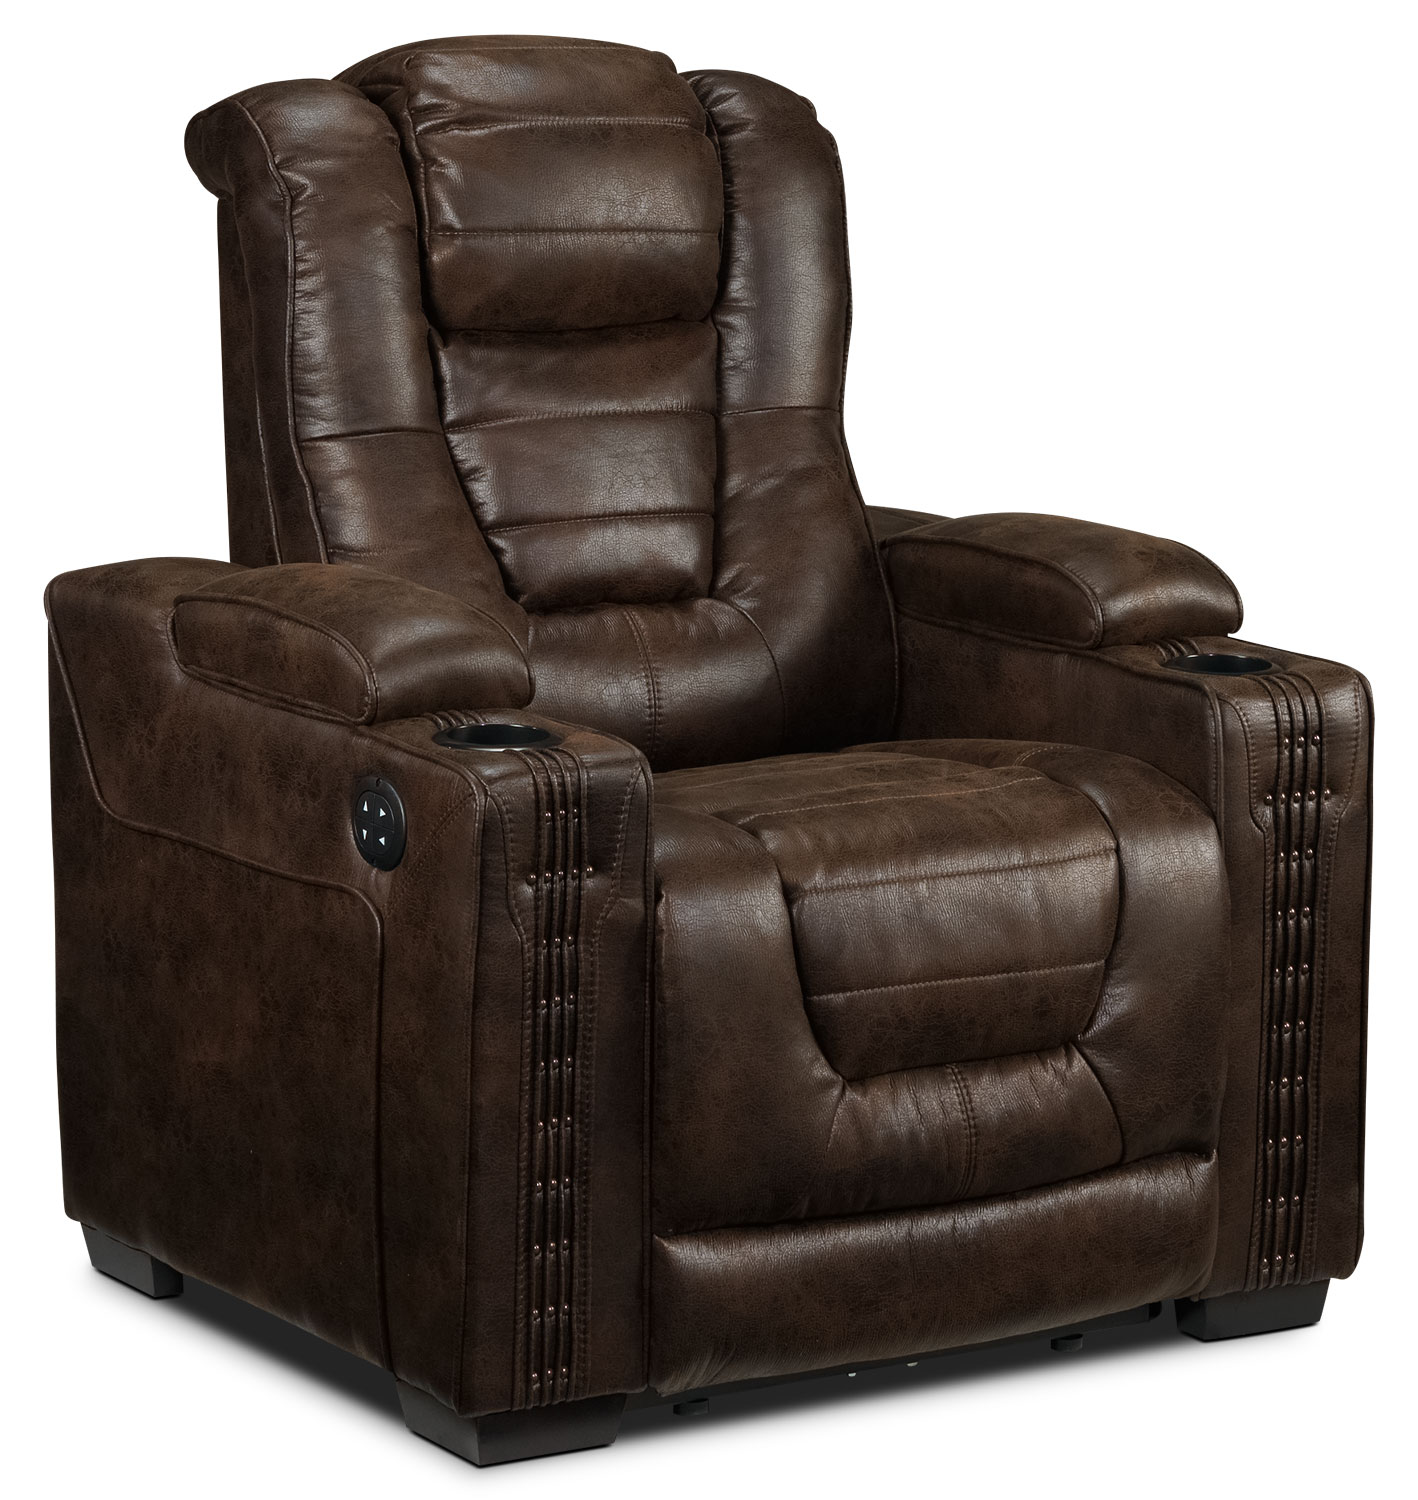 Dakota power reclining loveseat walnut leon 39 s Power reclining sofas and loveseats